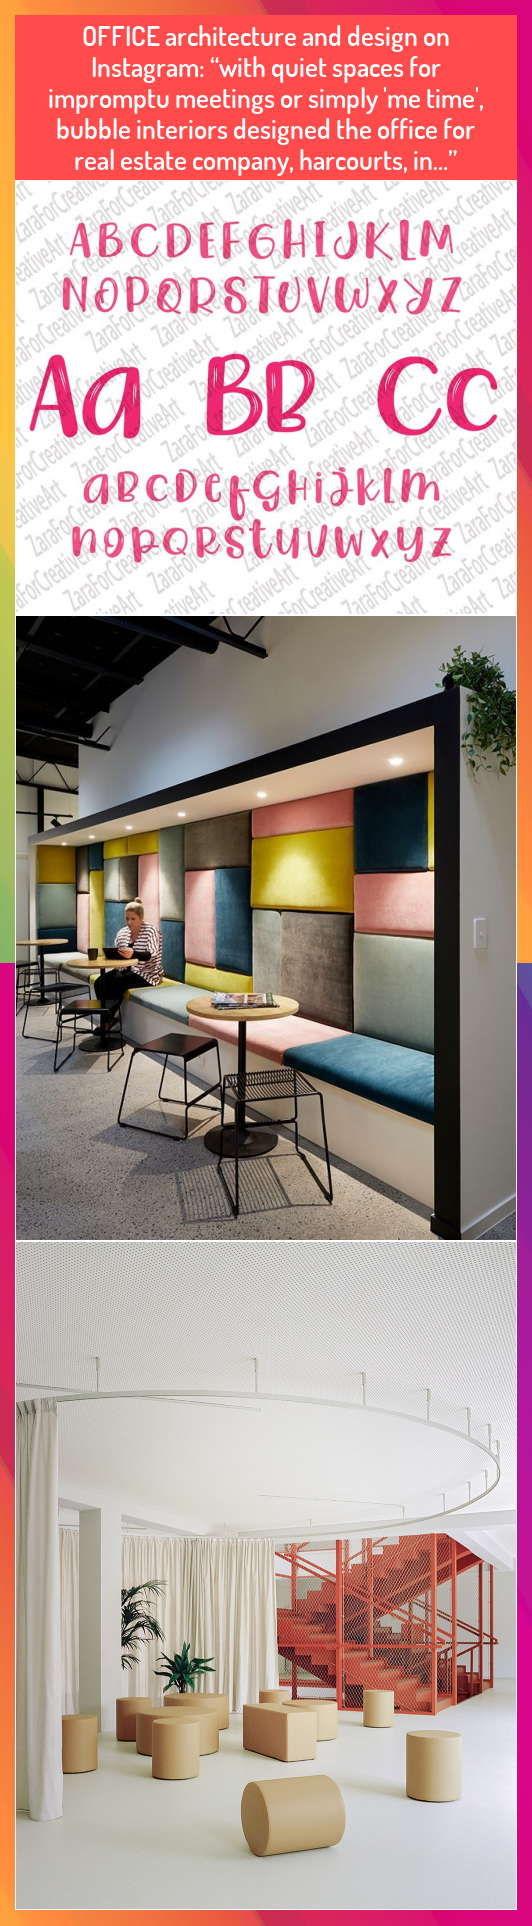 OFFICE architecture and design on Instagram with quiet spaces for impromptu meetings or simply me time bubble interiors designed the office for real estate company harcou...